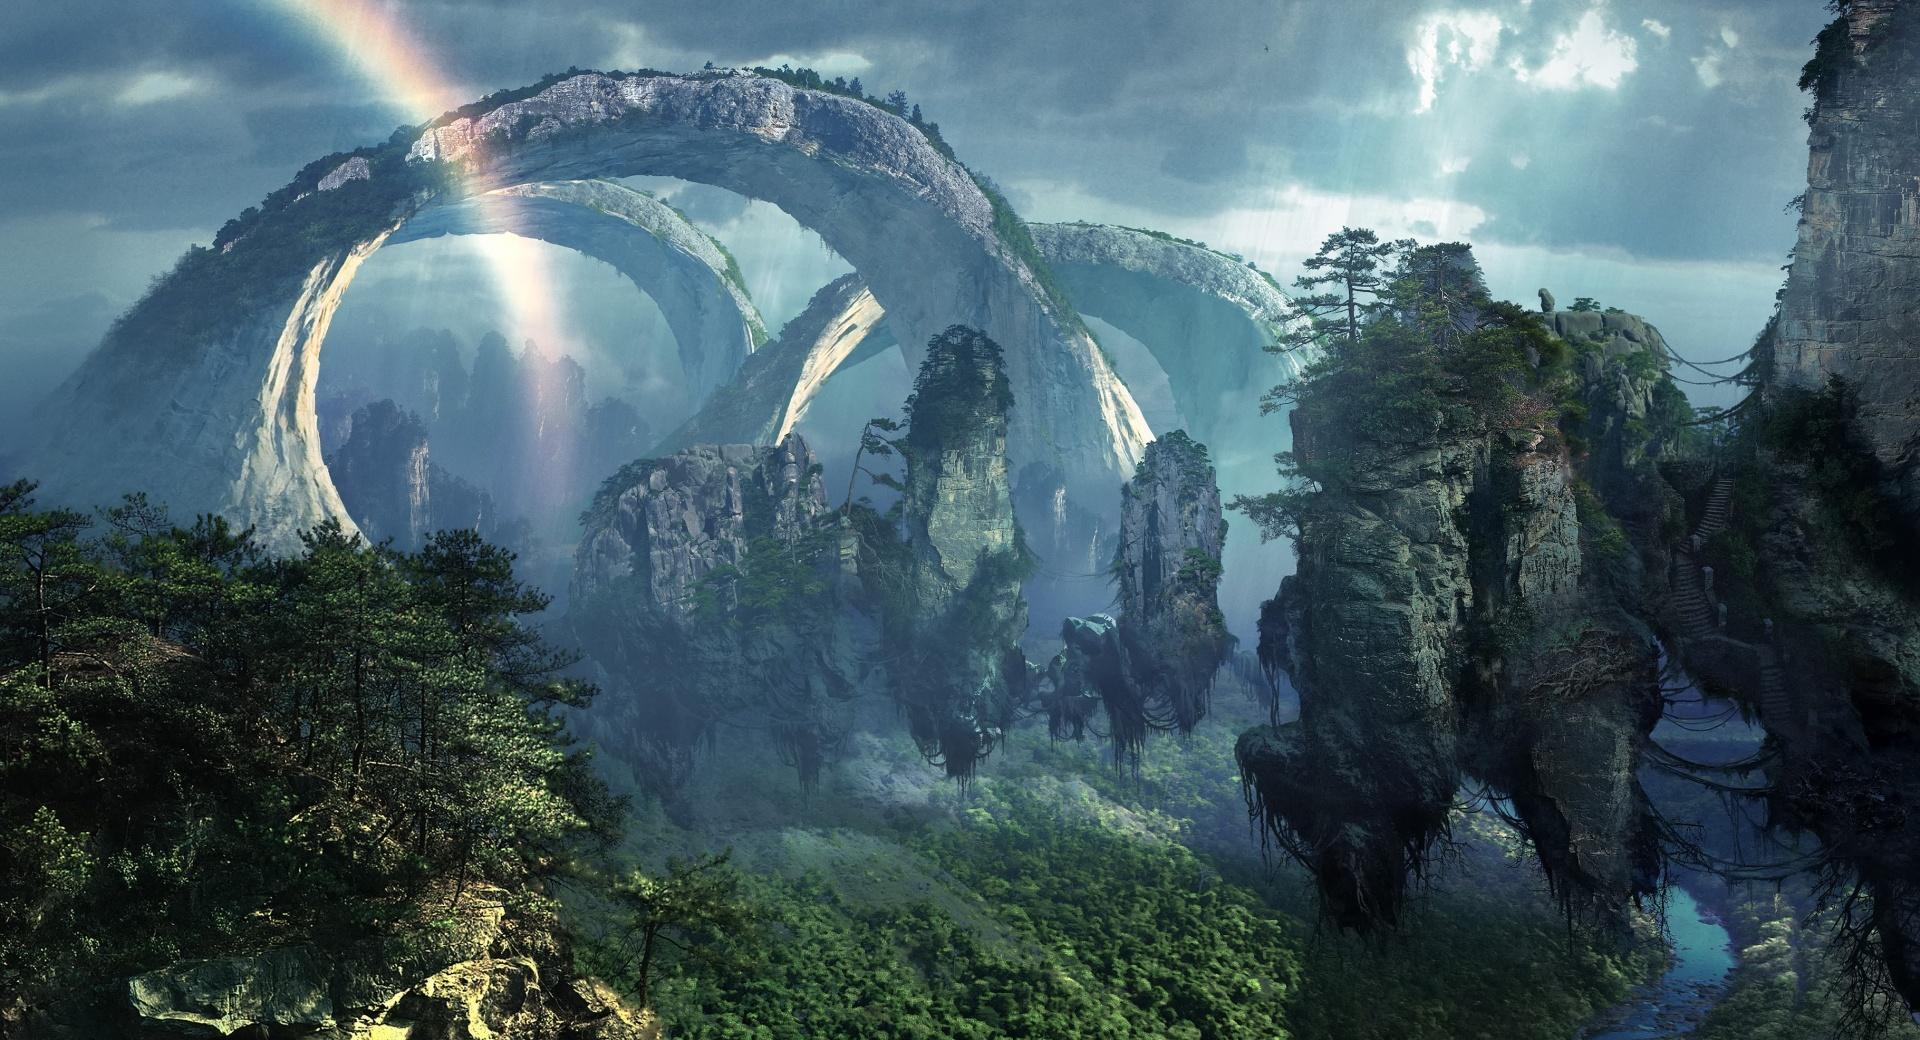 Flying Mountains Of Pandora wallpapers HD quality